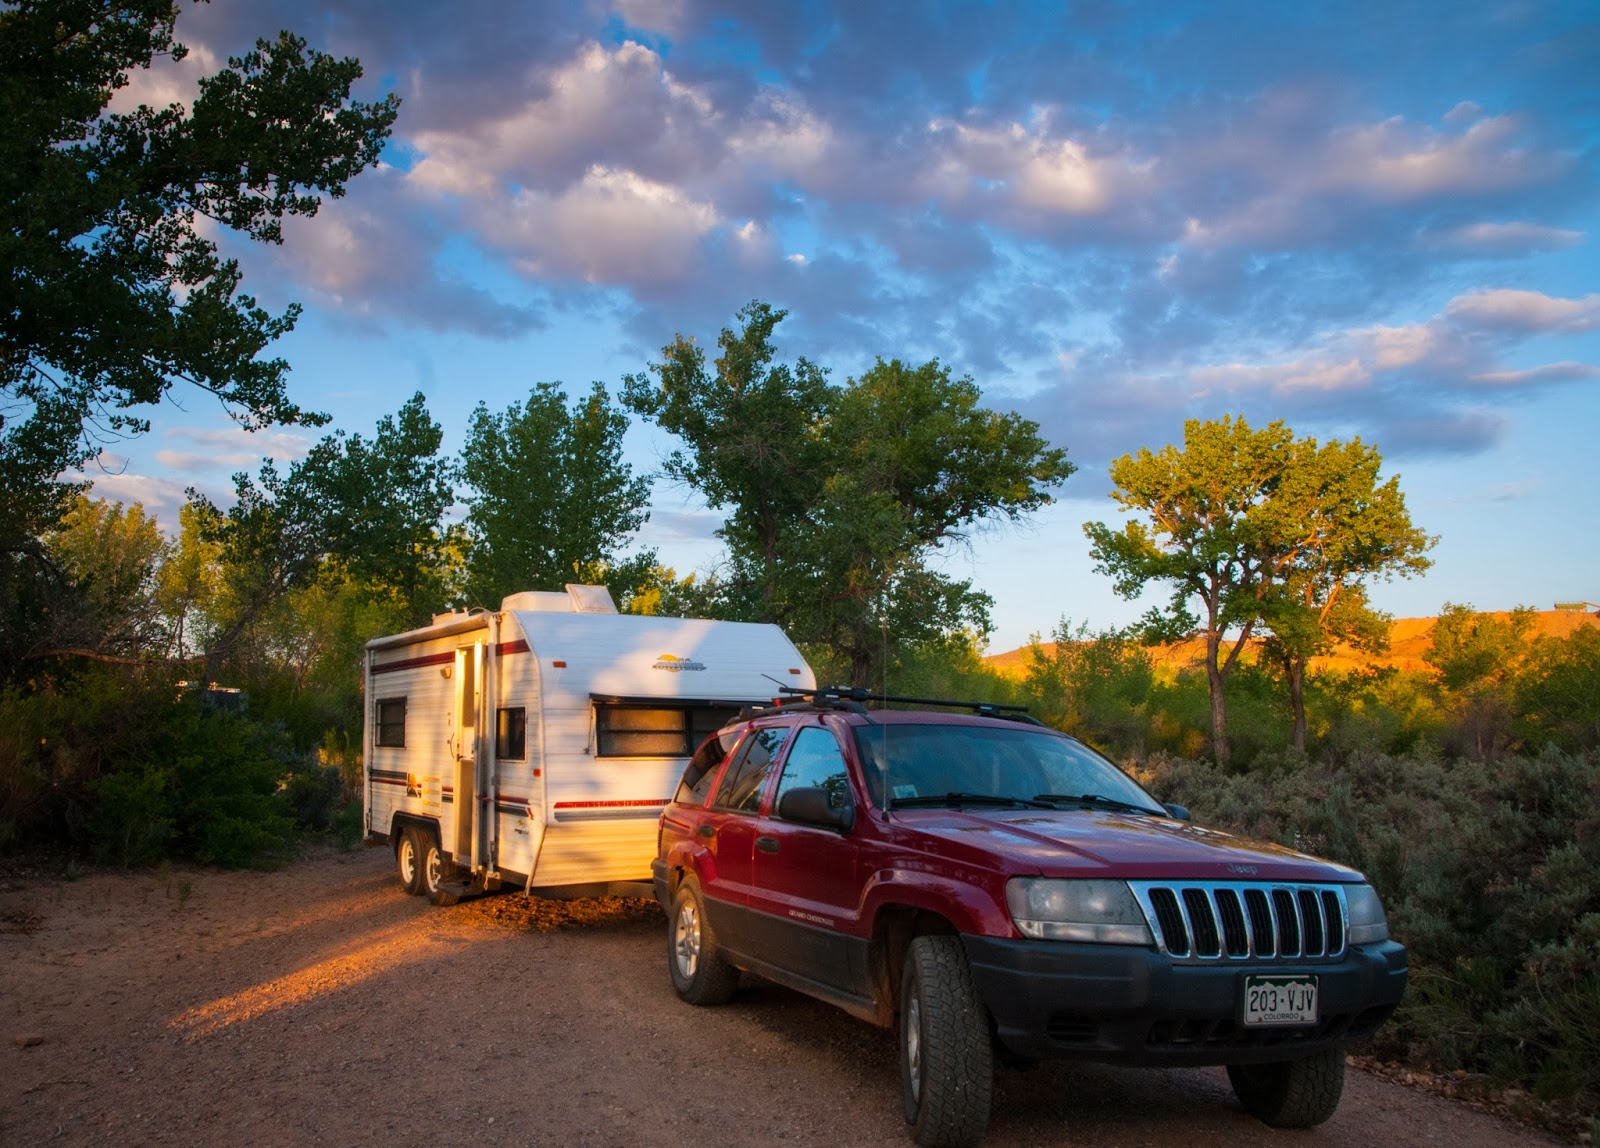 Sunrise from a tree filled campsite, a photo of my tow vehicle and an 18 foot travel trailer